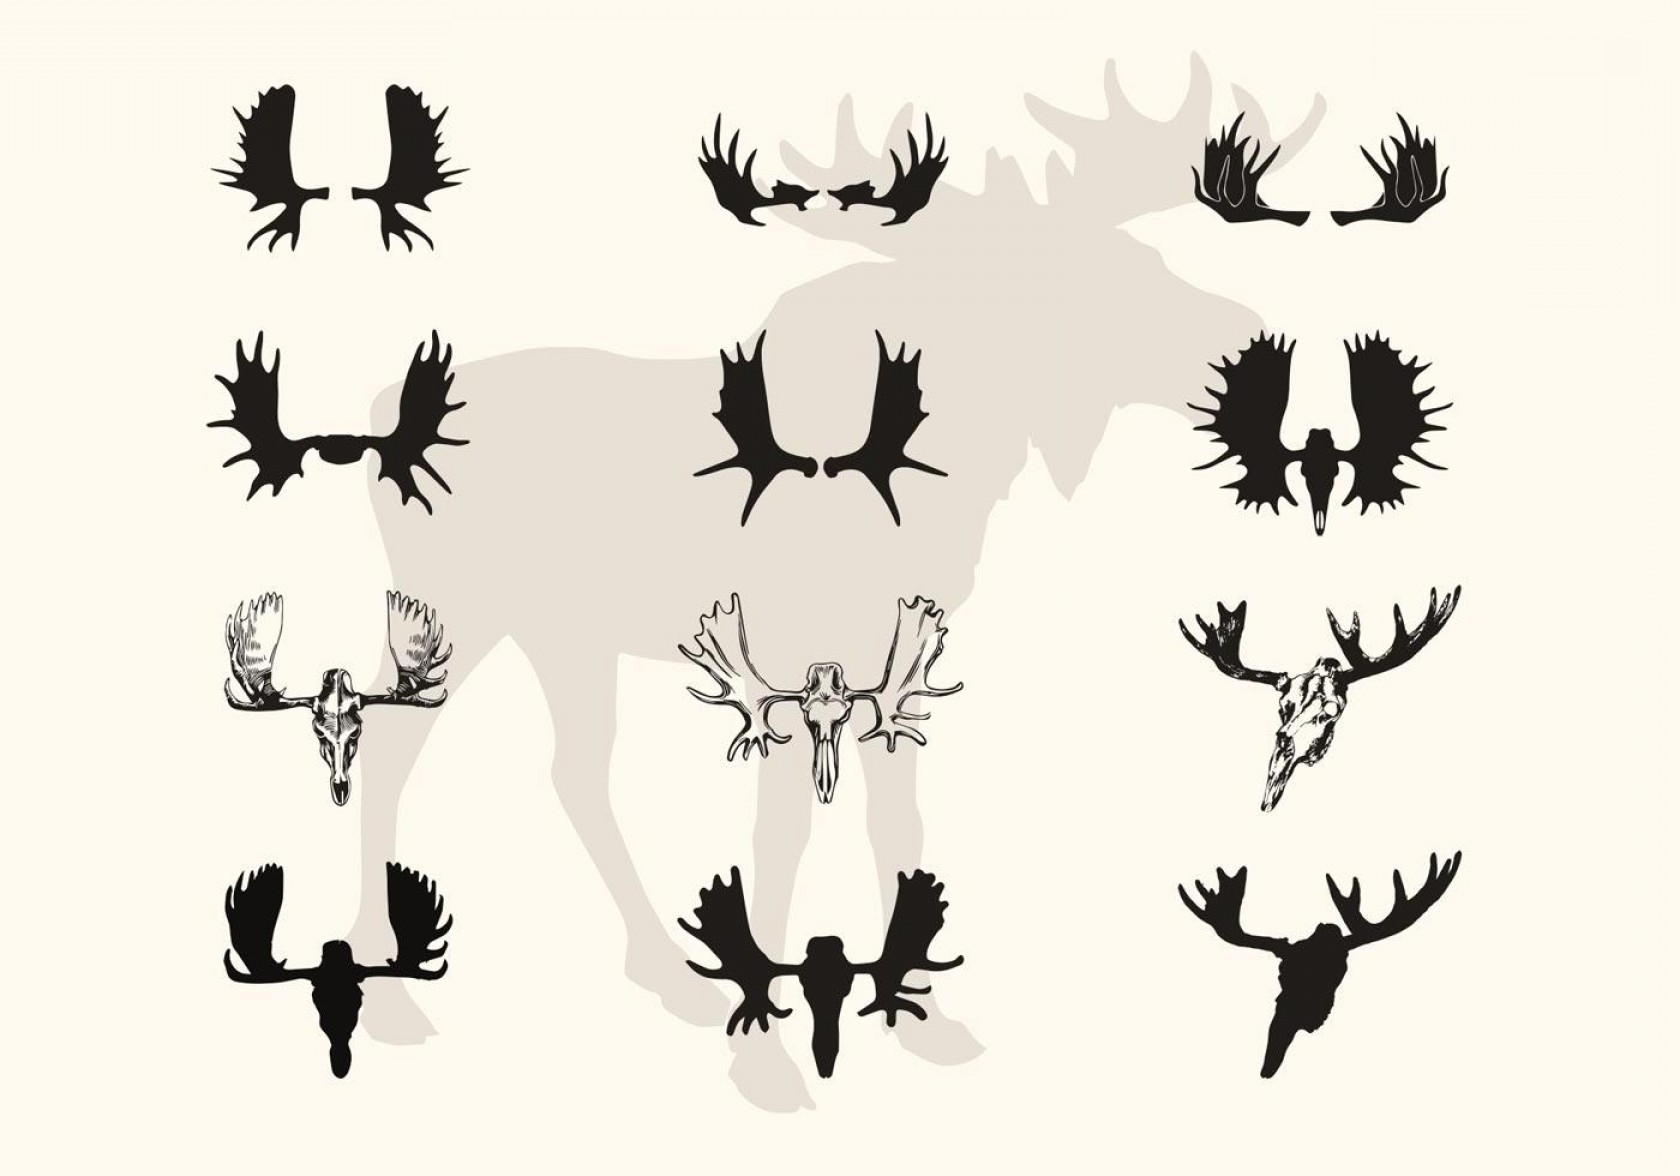 Moose Skull Vector: Best Moose Horns And Skull Vector Silhouettes Photos